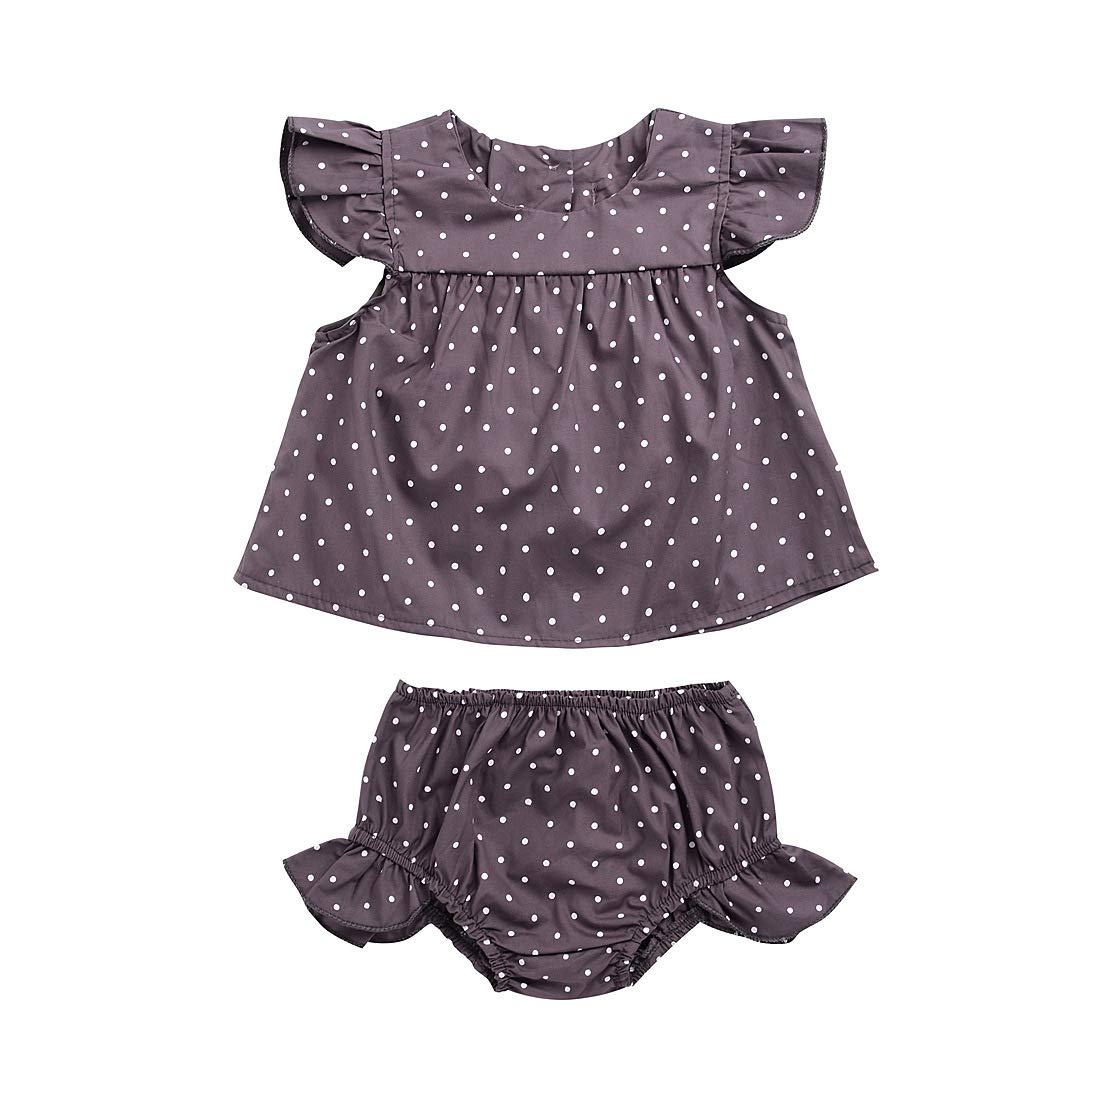 Newborn Baby Girl Summer Diaper Cover Shorts Clothes Suits Ruffled Sleeves Polka Dot Dress Top Cotton Panties 2Pcs Set